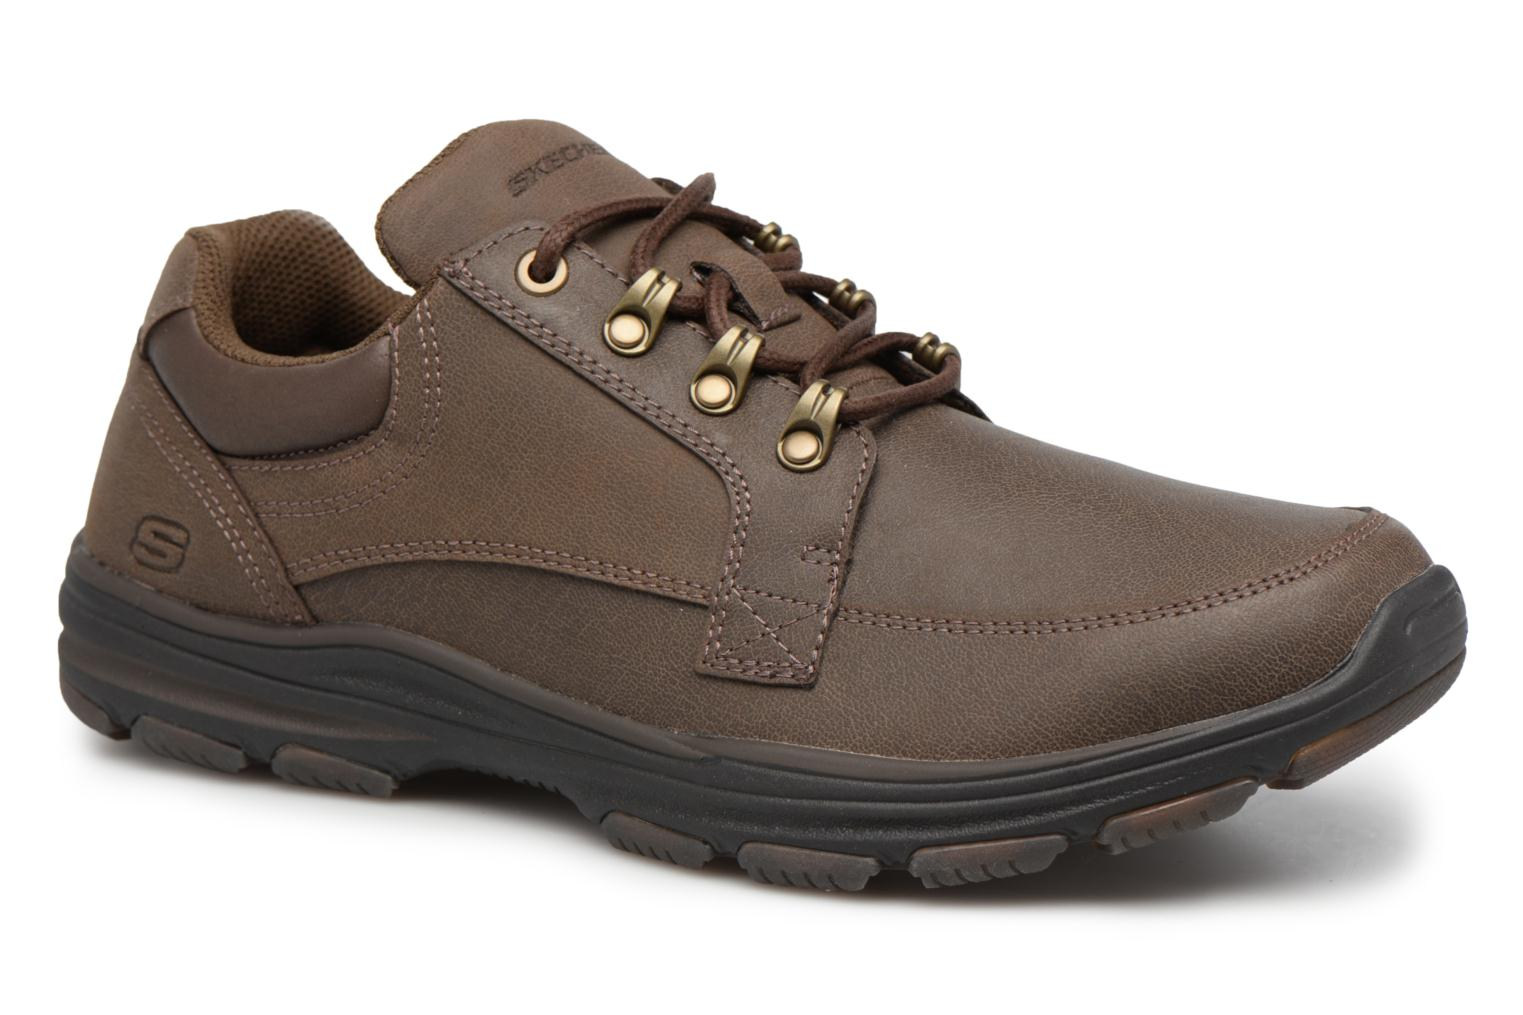 Baskets Skechers Garton-Briar Marron vue détail/paire